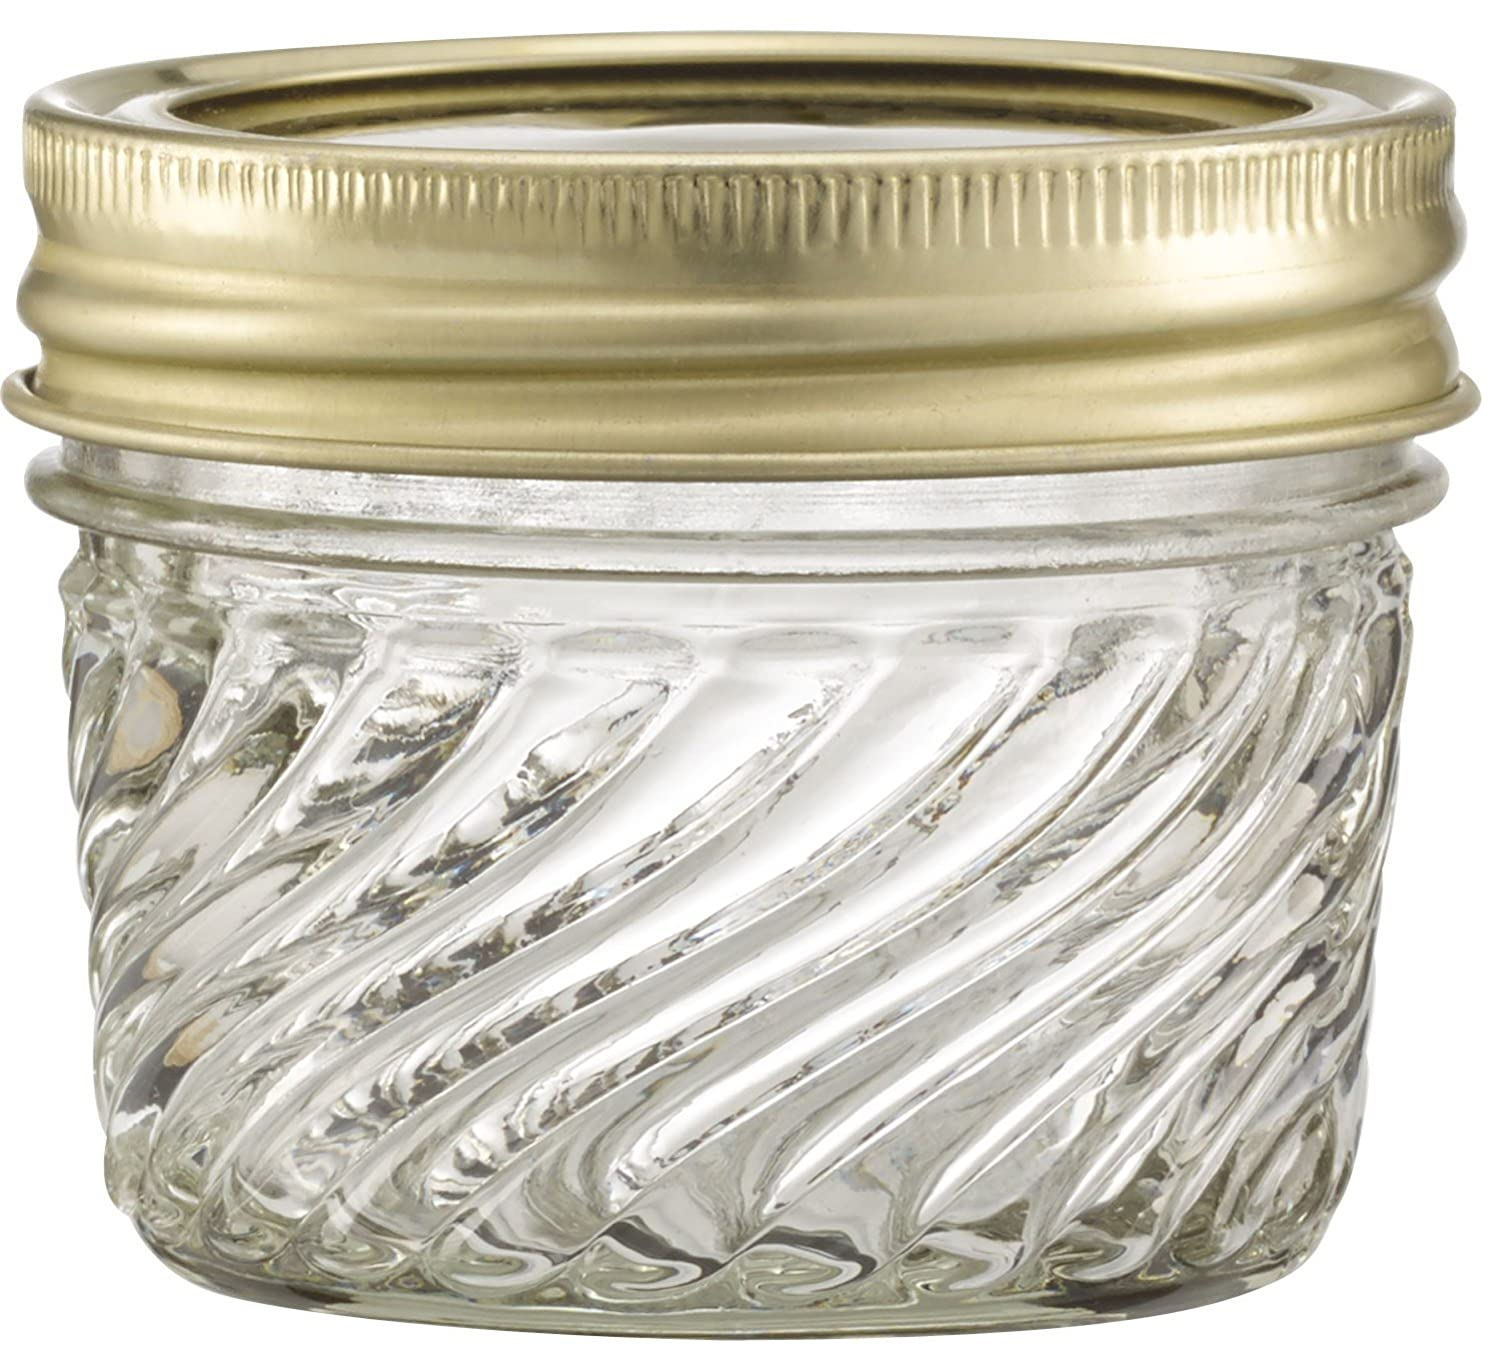 glass jelly jars with lids and bands set of 12 4 oz regular mouth other. Black Bedroom Furniture Sets. Home Design Ideas